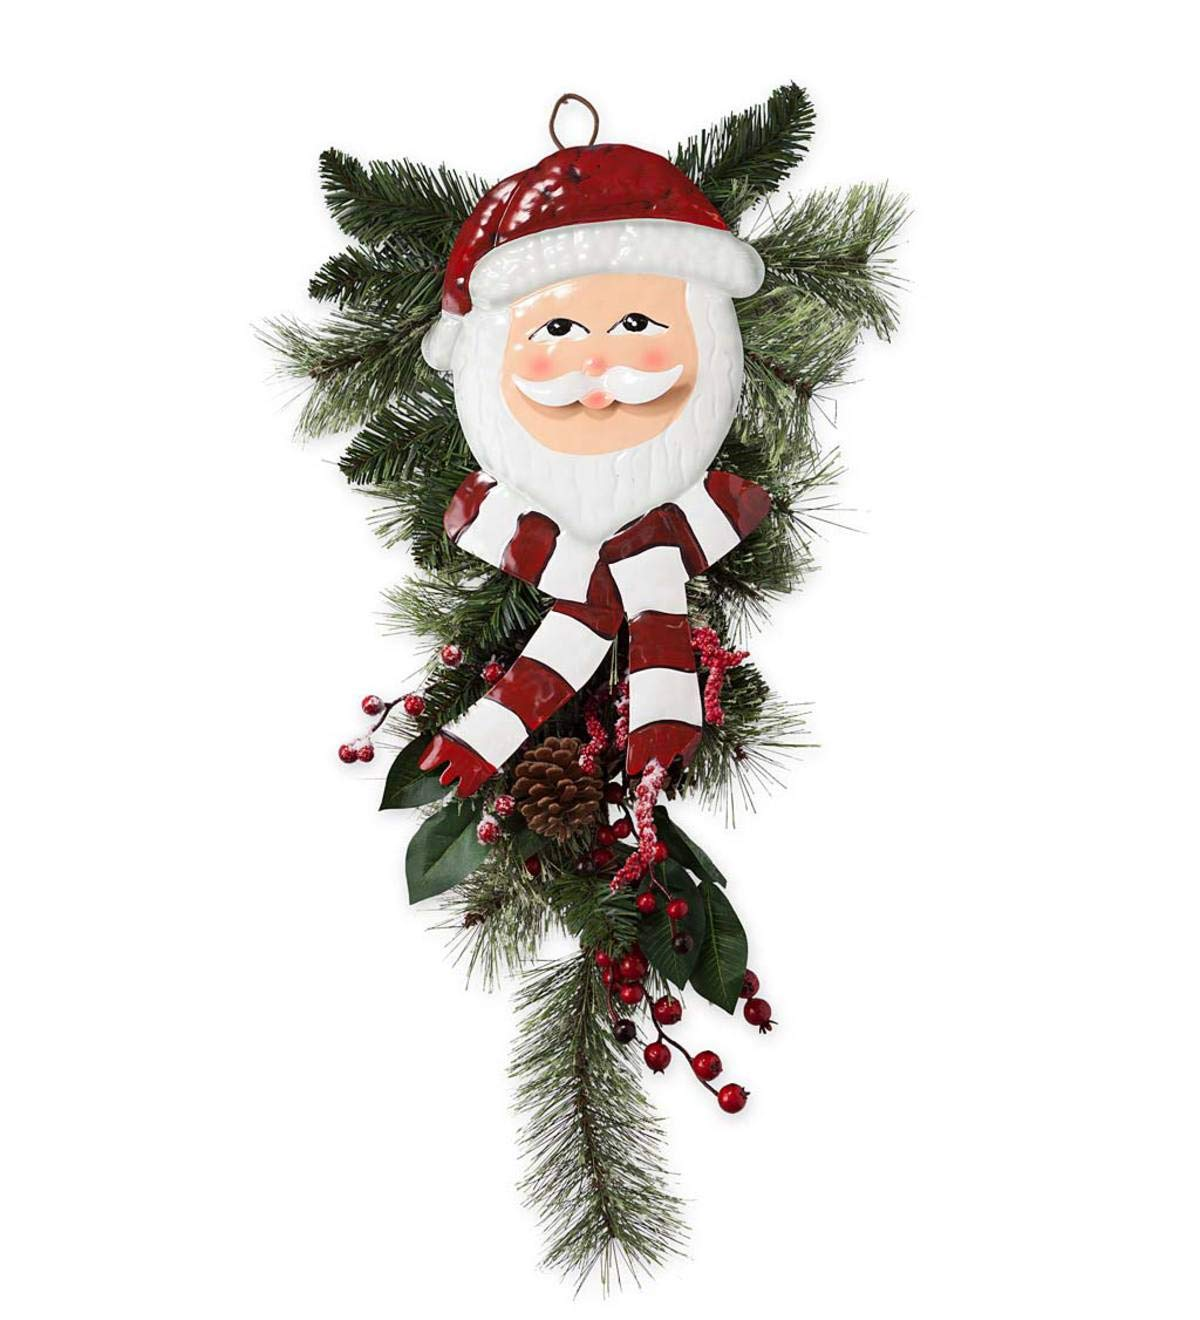 Plow & Hearth Holiday Door Swag with Santa Face - Approx. 27.5 L x 13 W